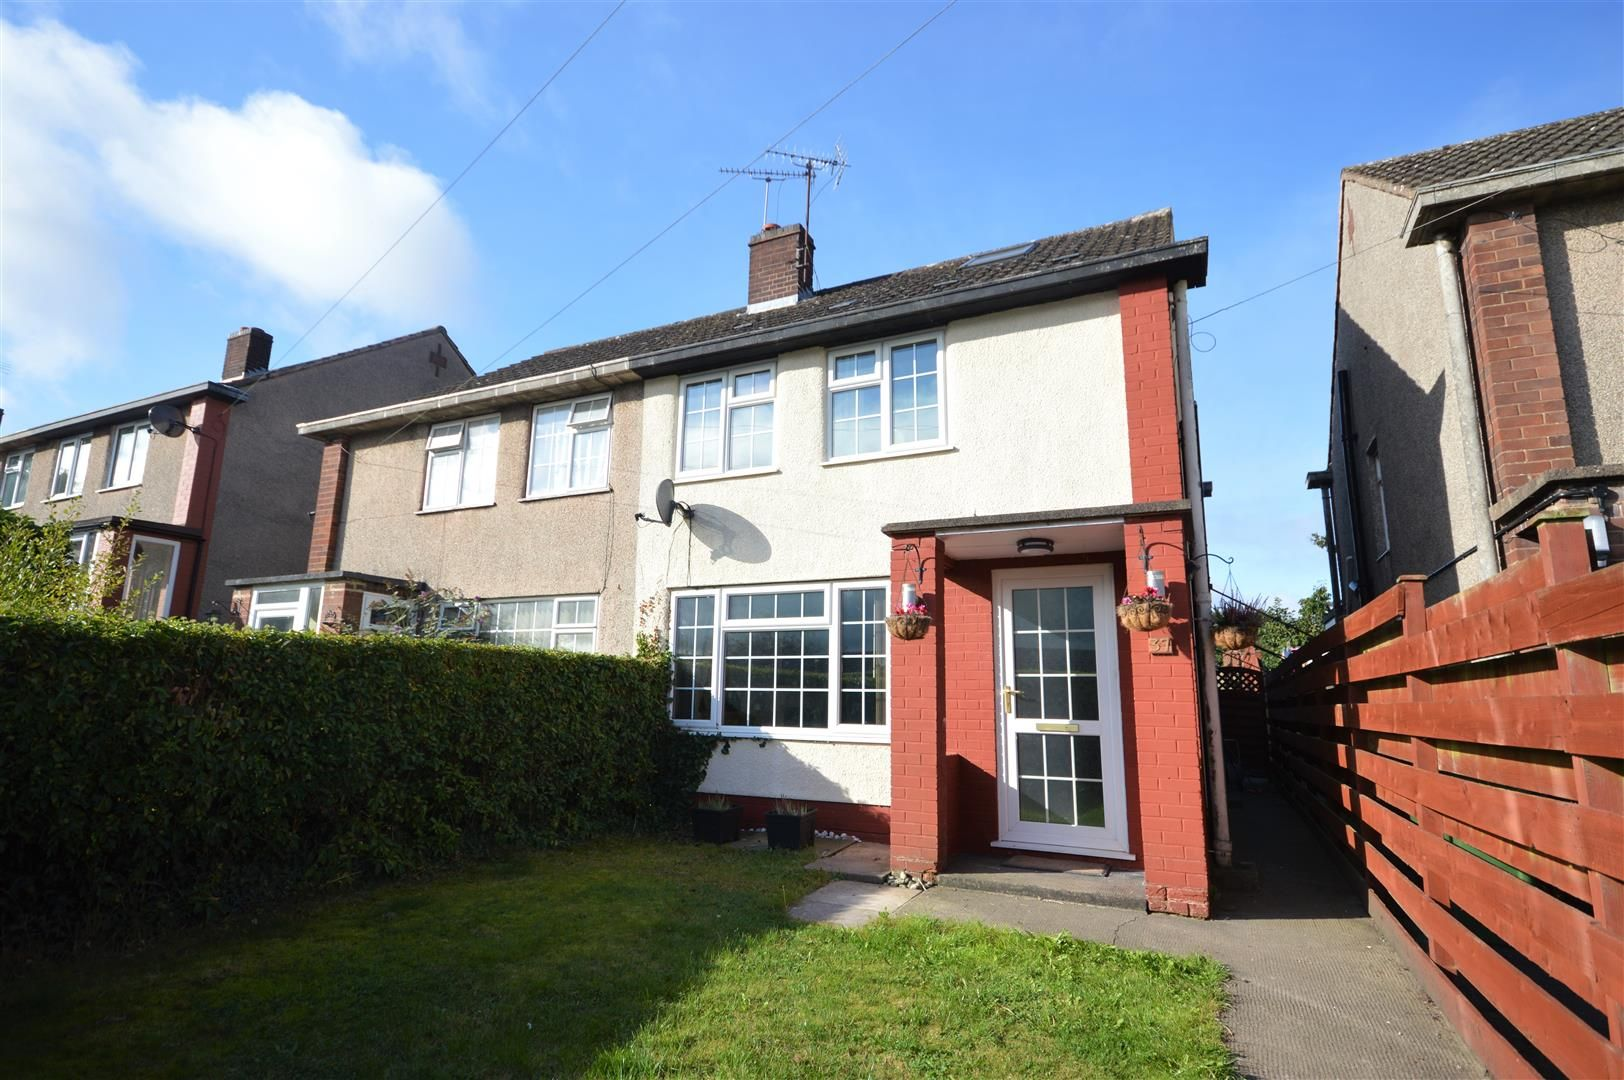 3 bed semi-detached for sale, HR6